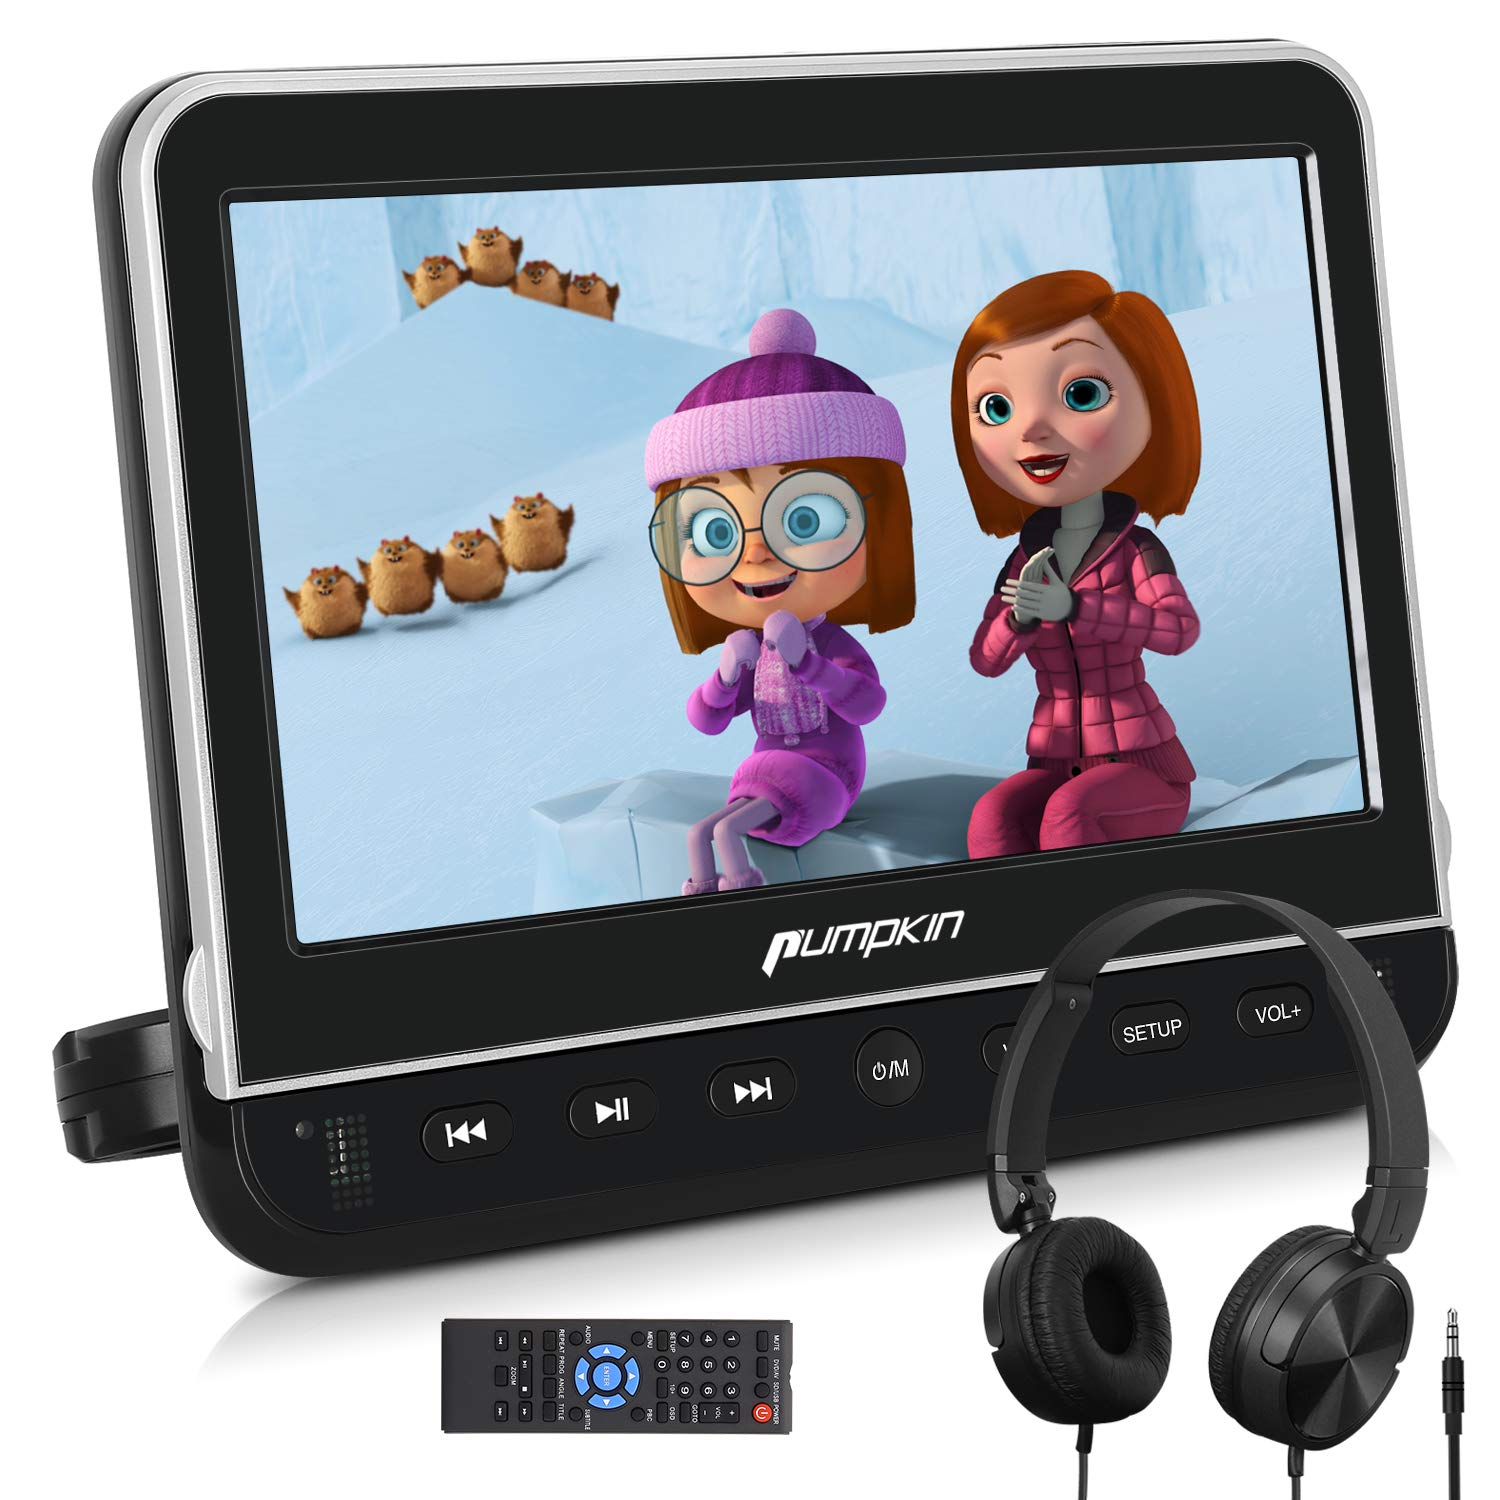 PUMPKIN 10.1 Inch Car Headrest DVD Player with Headphone, Support HDMI Input, 1080P Video, AV in Out, Region Free, USB SD, Last Memory by PUMPKIN